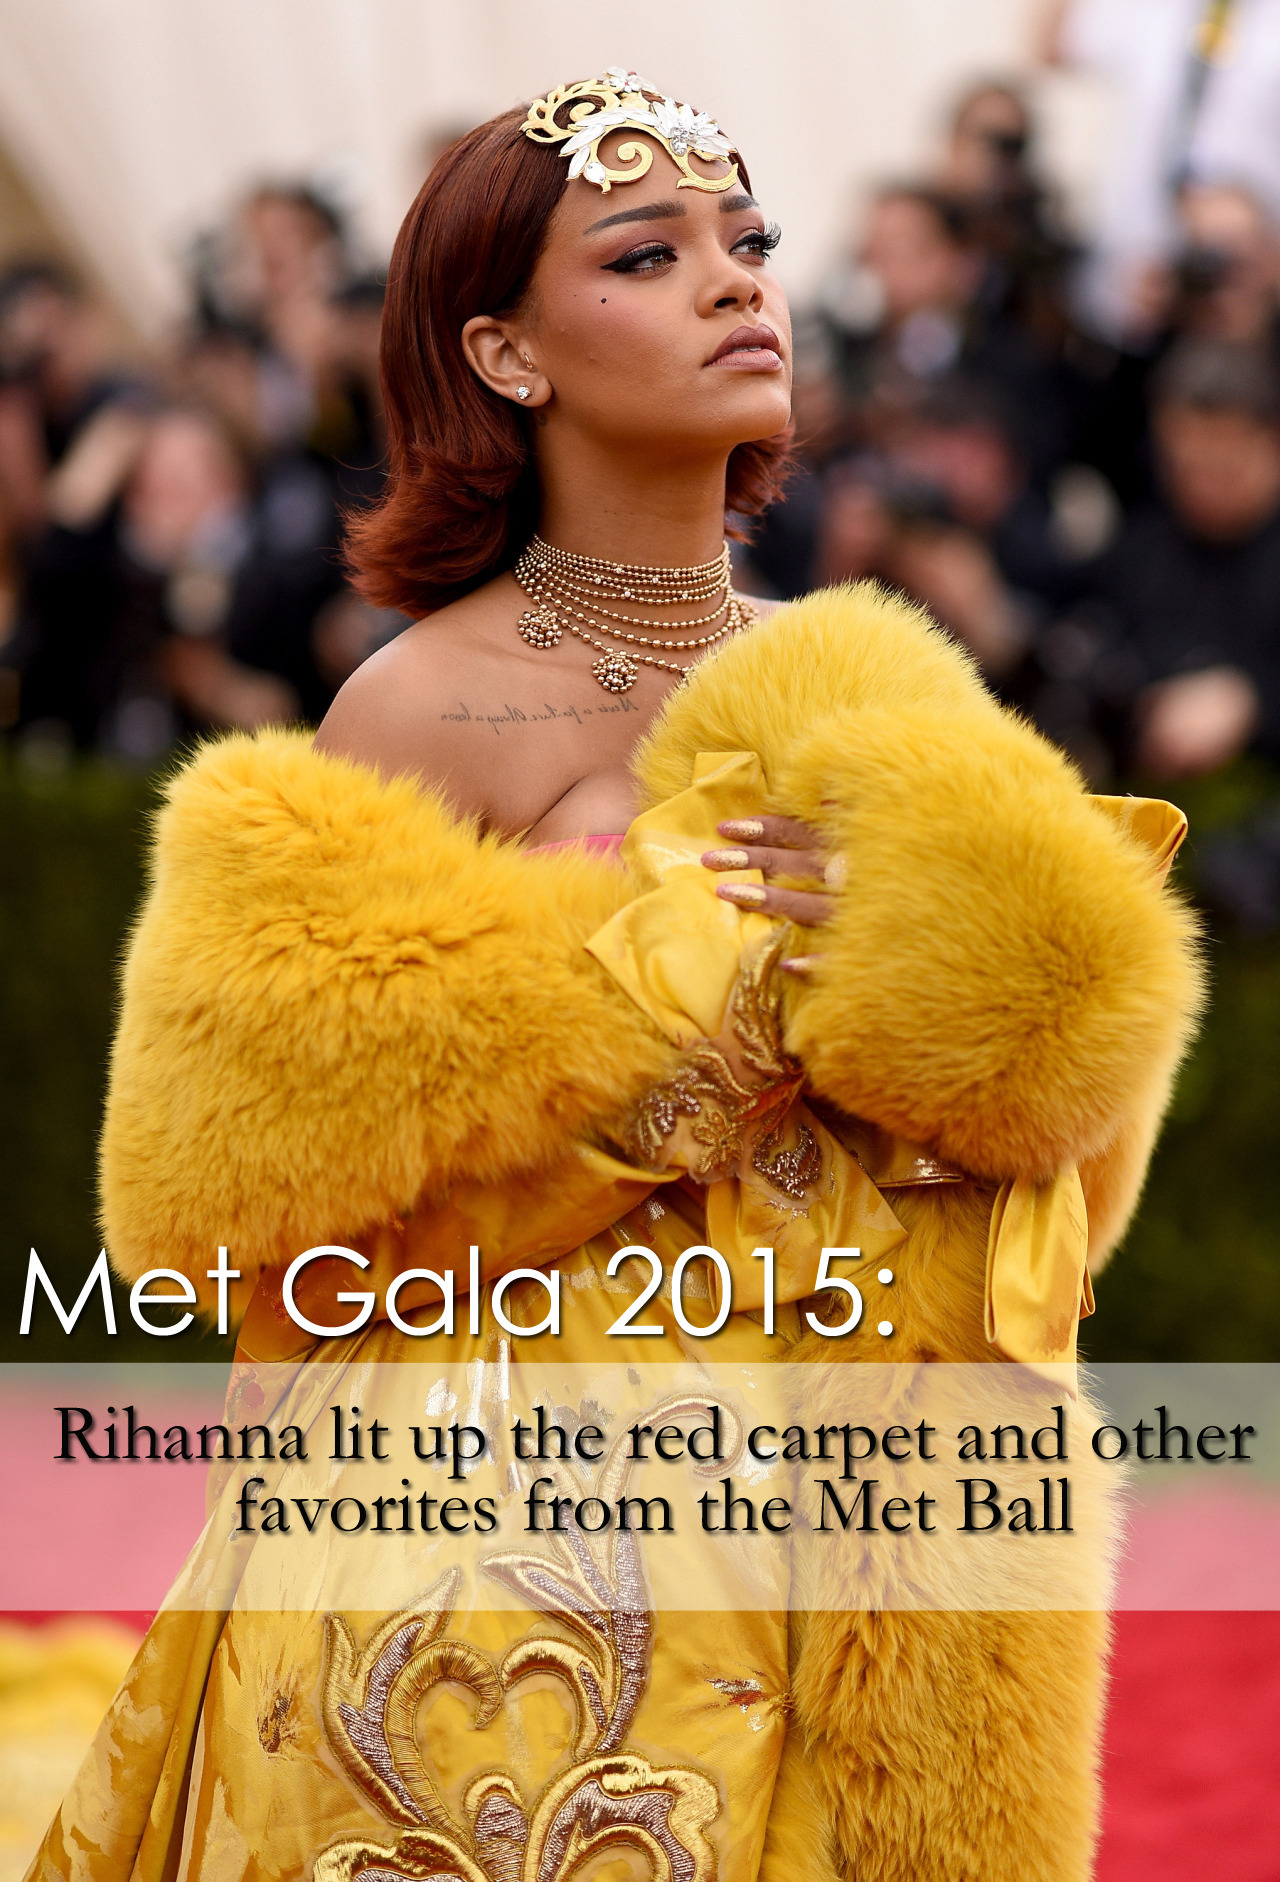 Rihanna lit up the red carpet and other favorites from the Met Ball